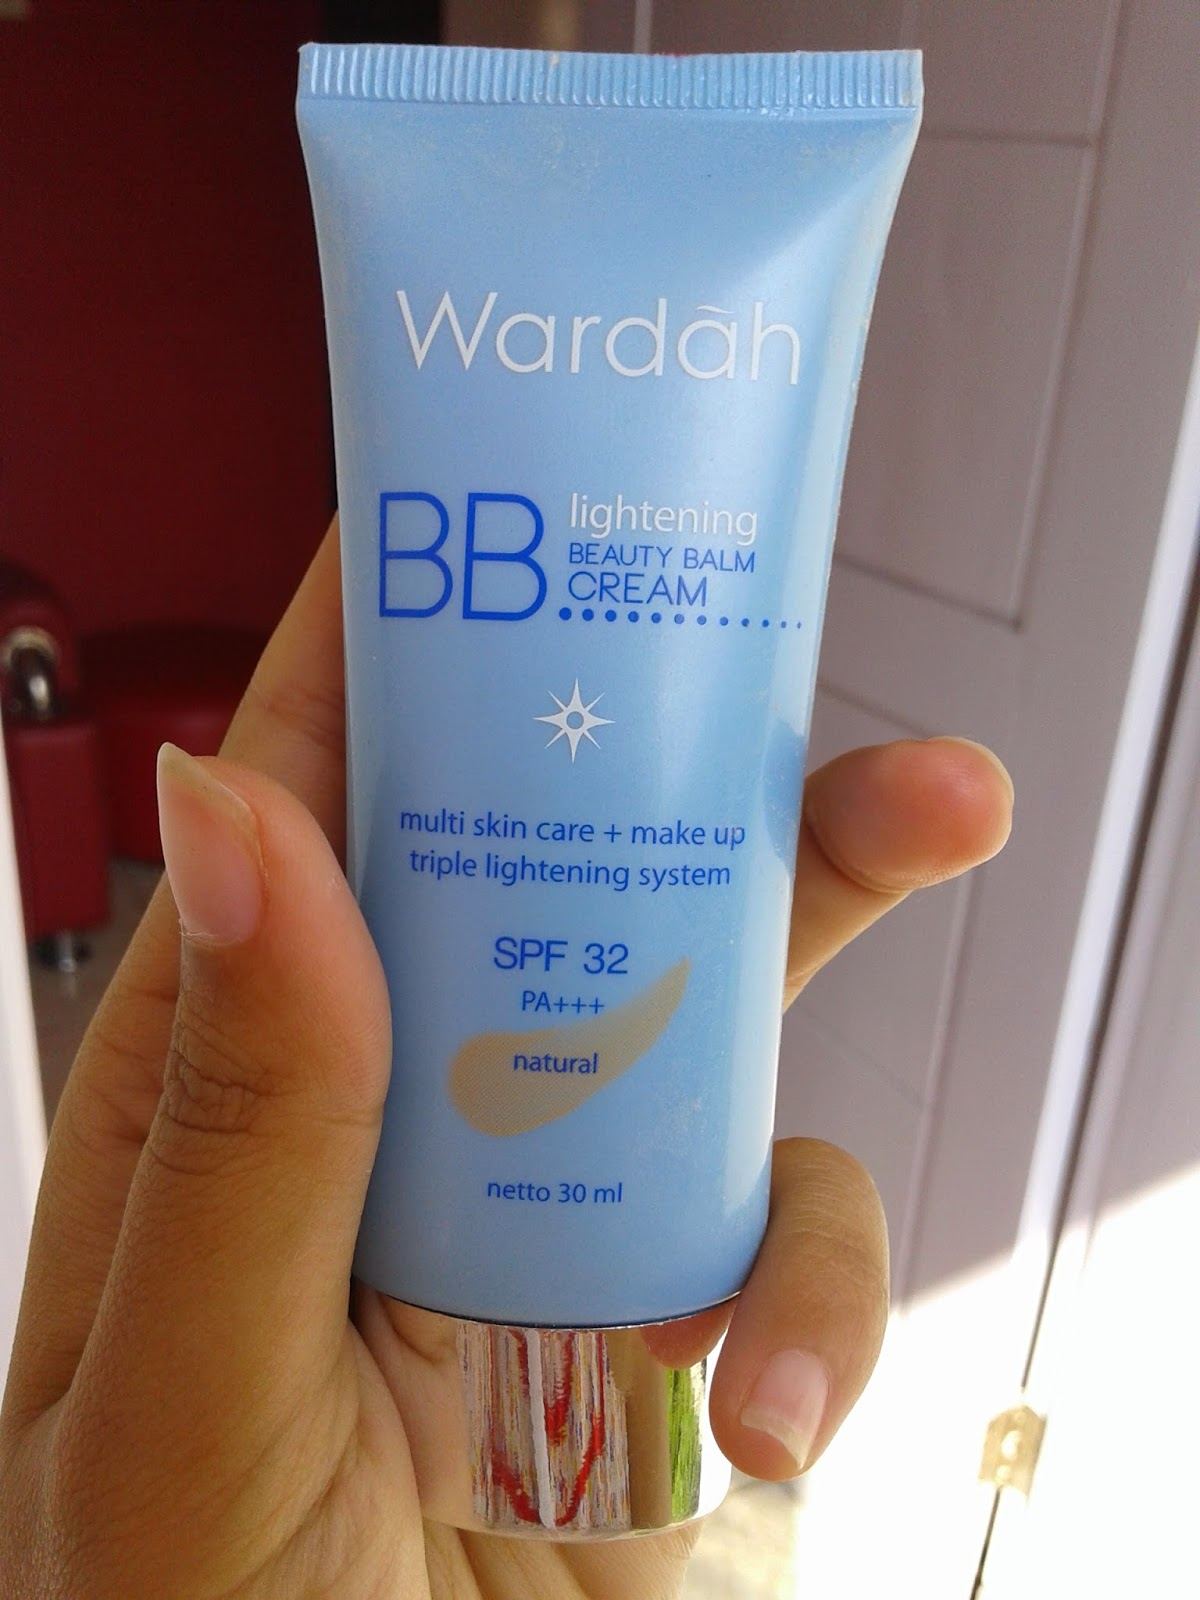 My Life: Review BB cream wardah